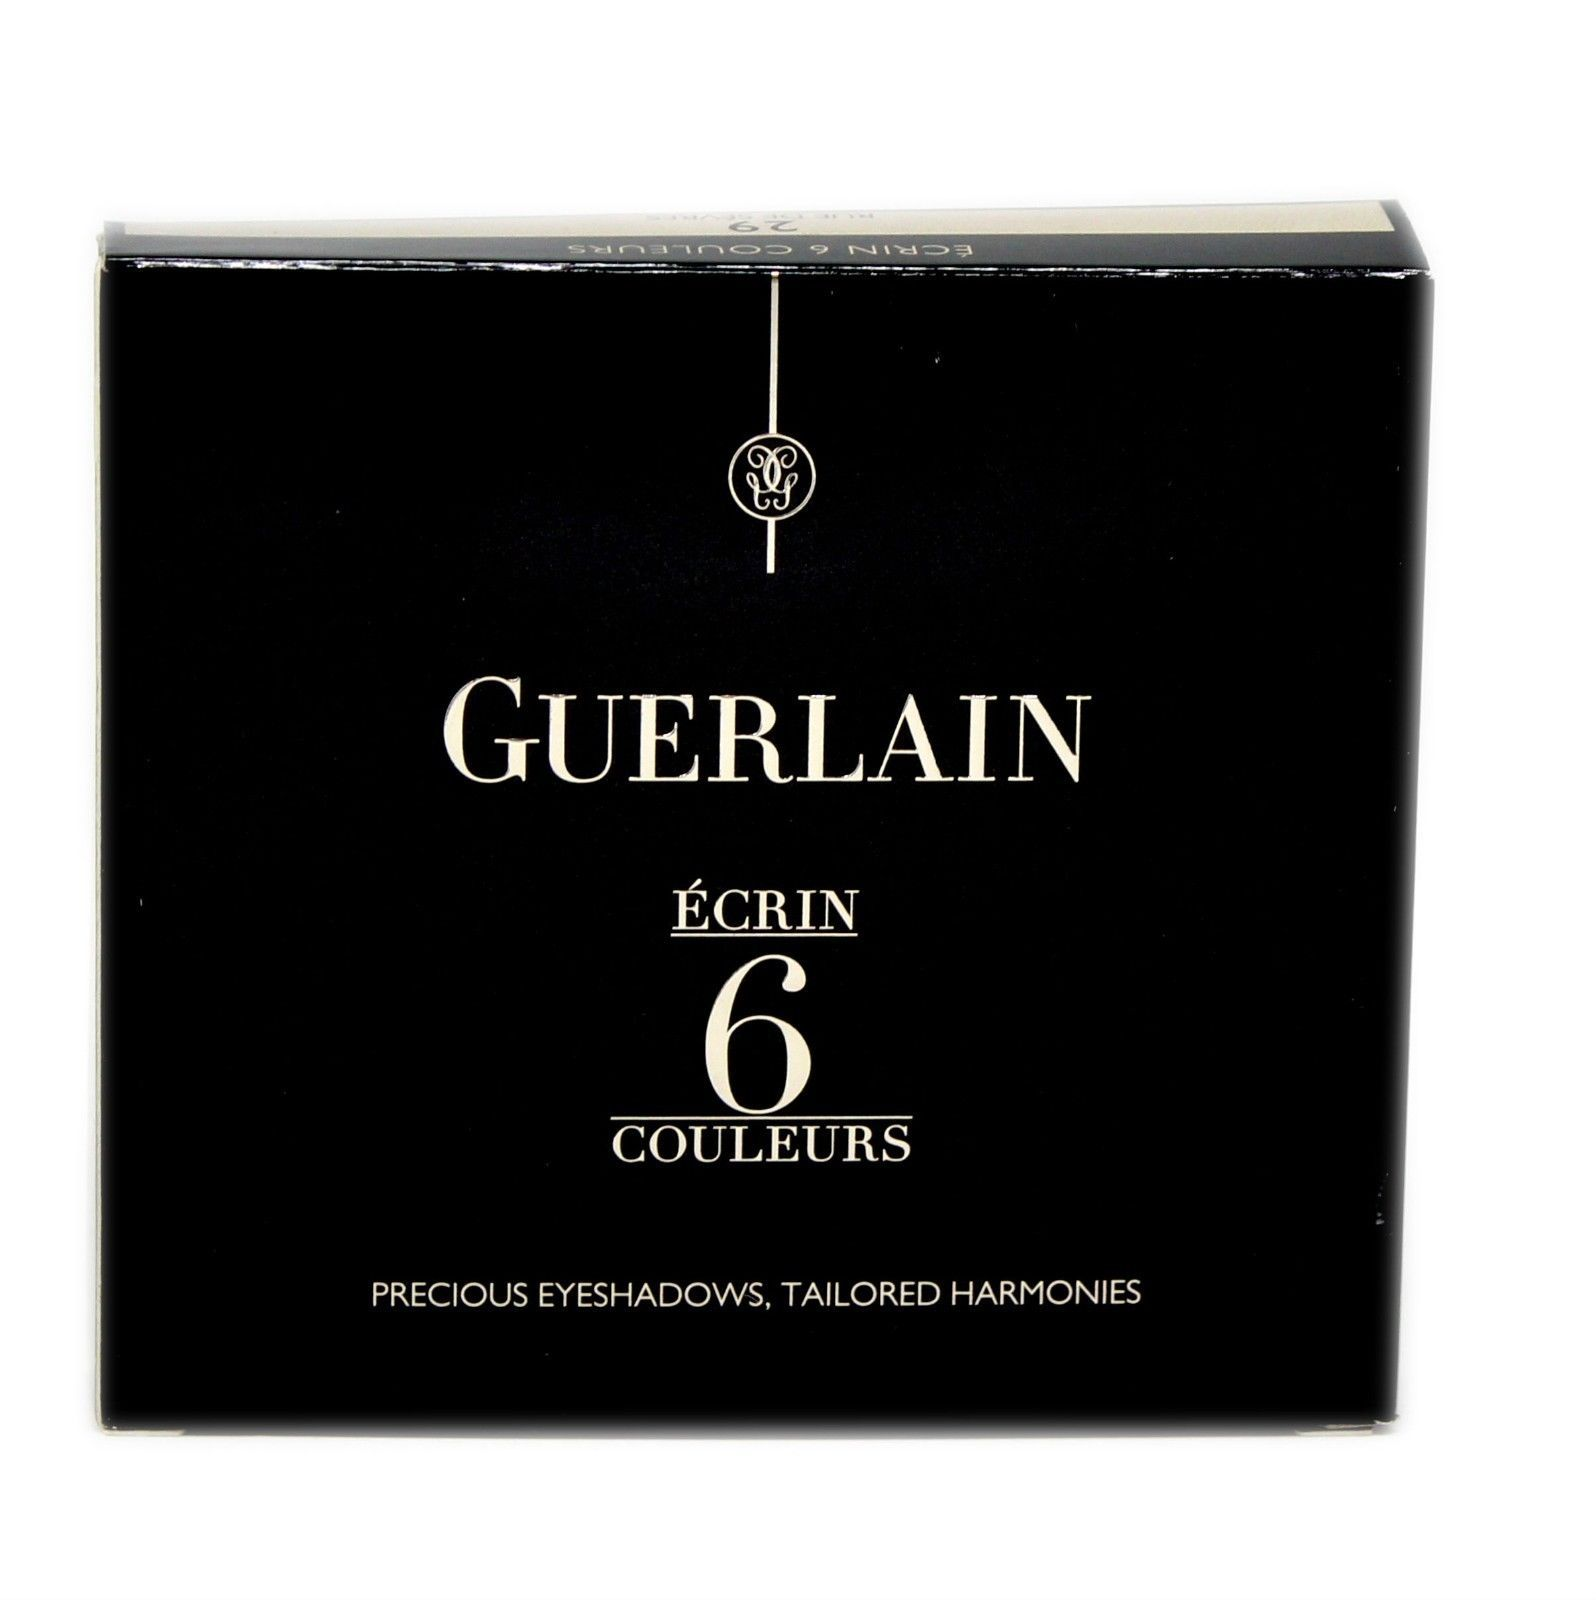 Primary image for GUERLAIN ECRIN 6 COULEURS PRECIOUS EYESHADOWS,TAILORED HARMONIES 7.3G #29-G41049